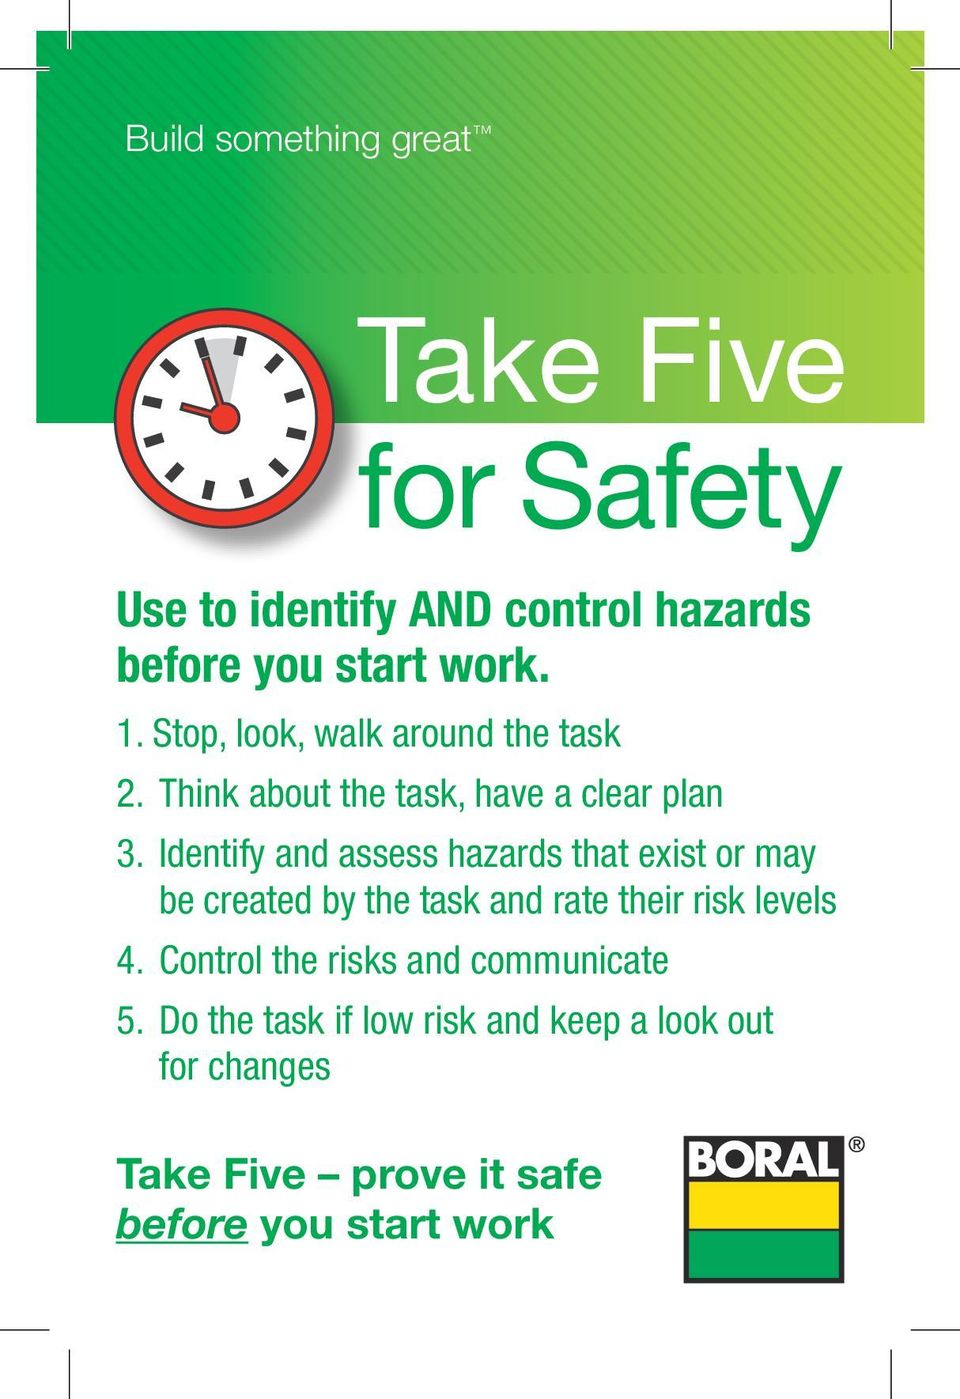 Identify and assess hazards that exist or may be created by the task and rate their risk levels 4.